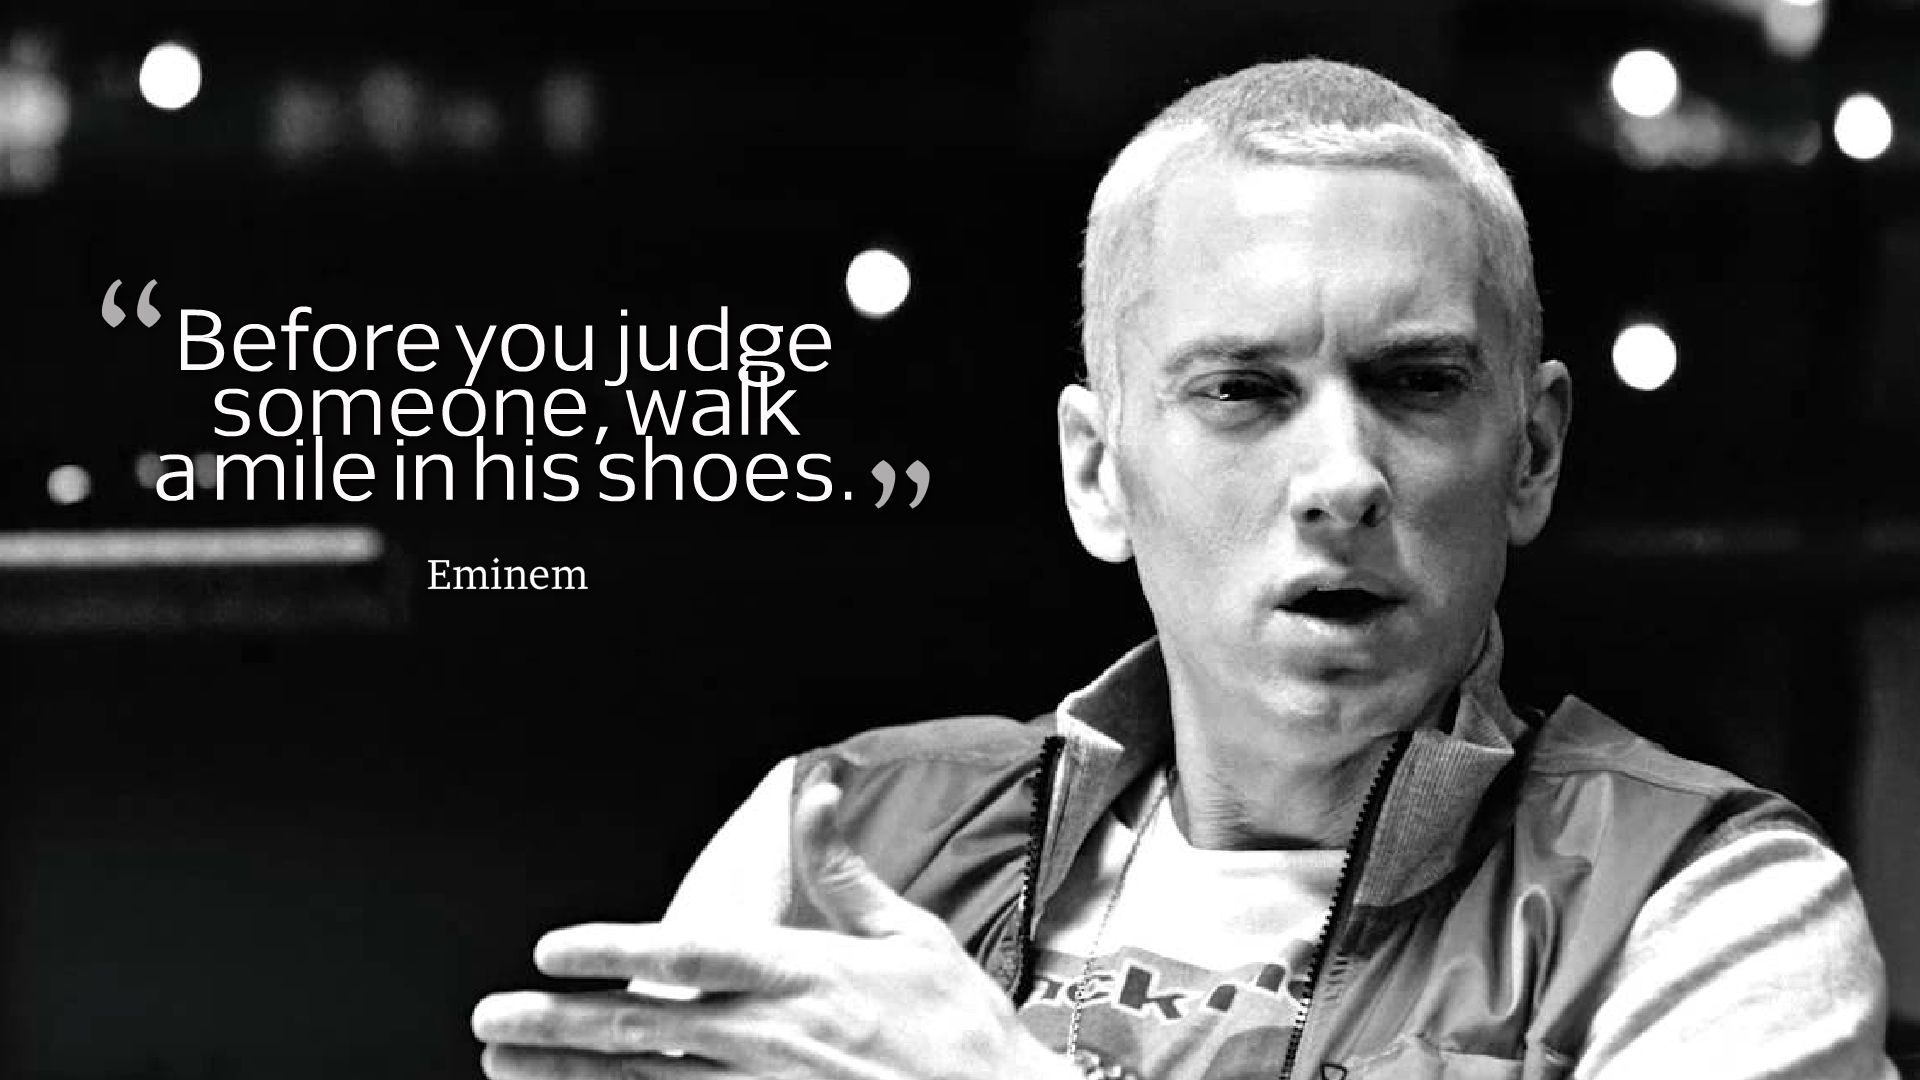 Eminem Quotes Wallpapers HD Backgrounds Images Pics Photos 1920x1080